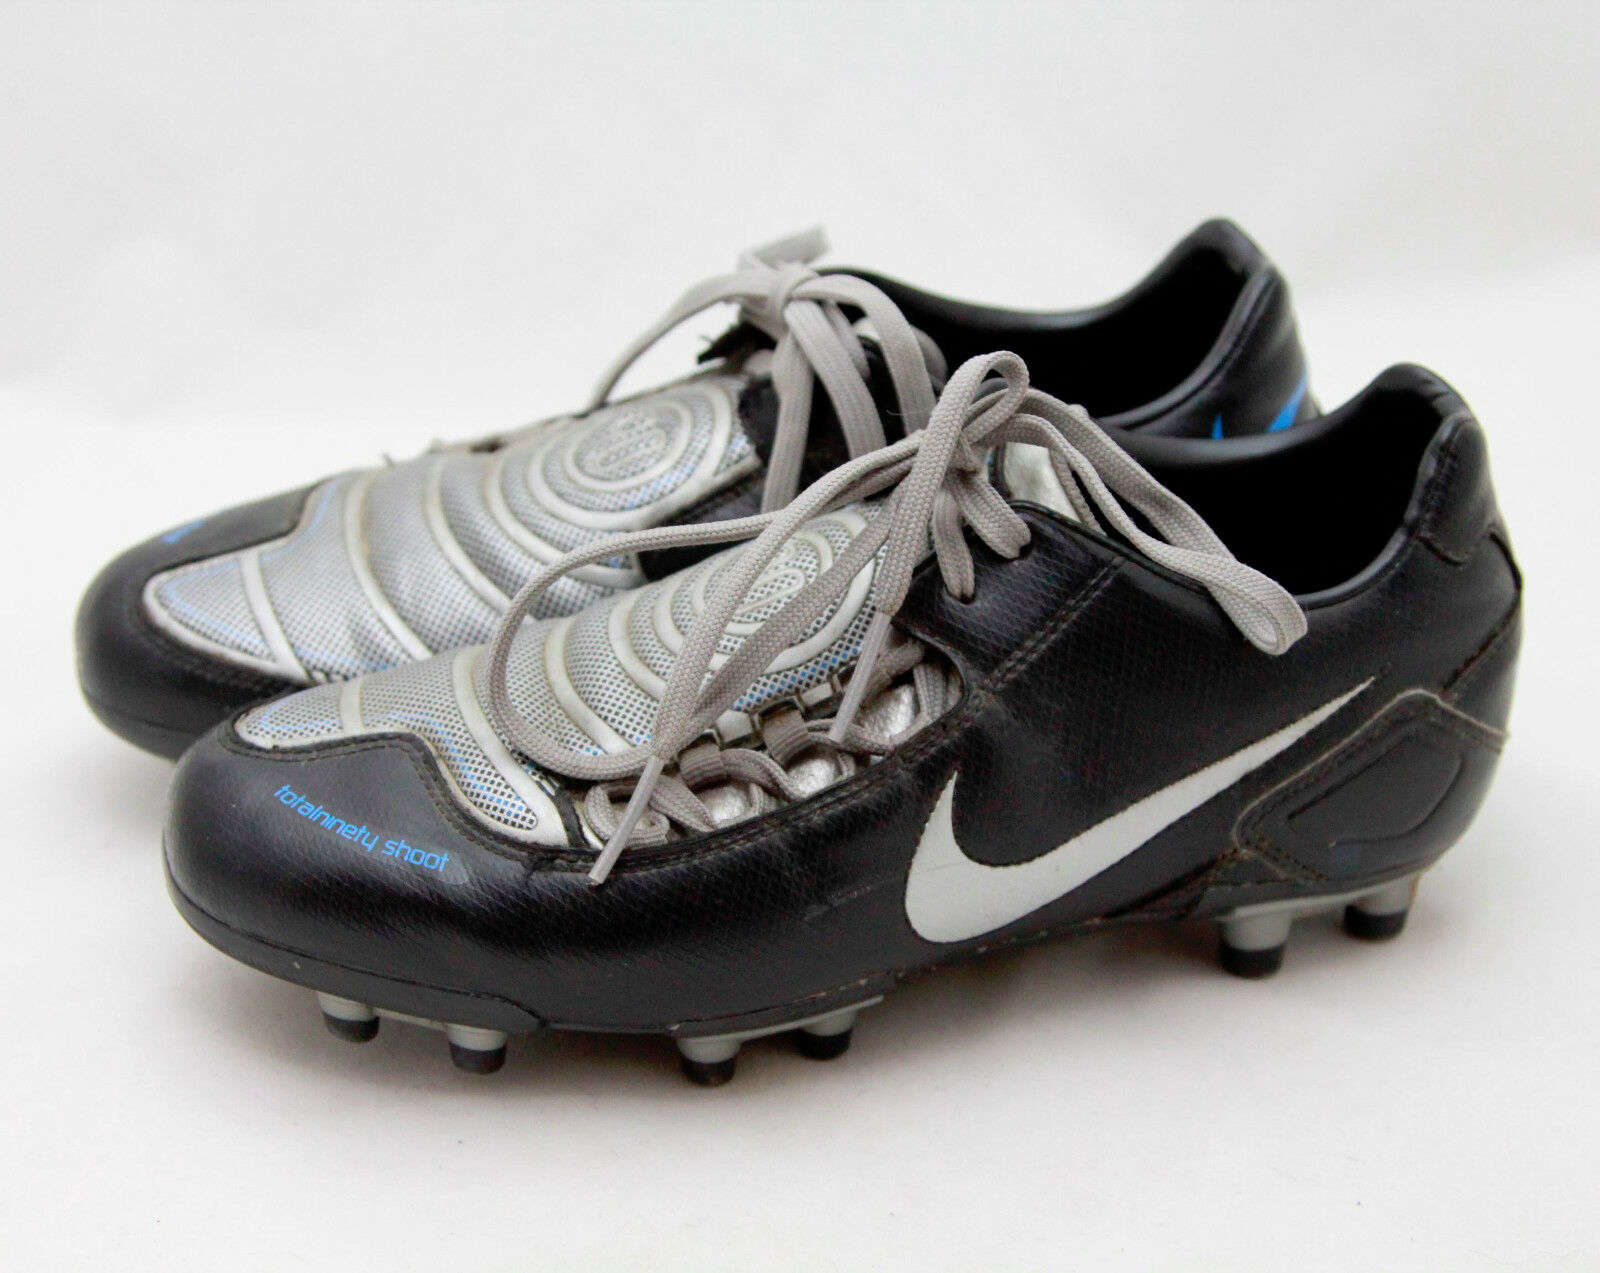 Nike TotalNinety Shoot Black Silver Cleats, Men's Size 7.5 Athletic Sneakers GUC